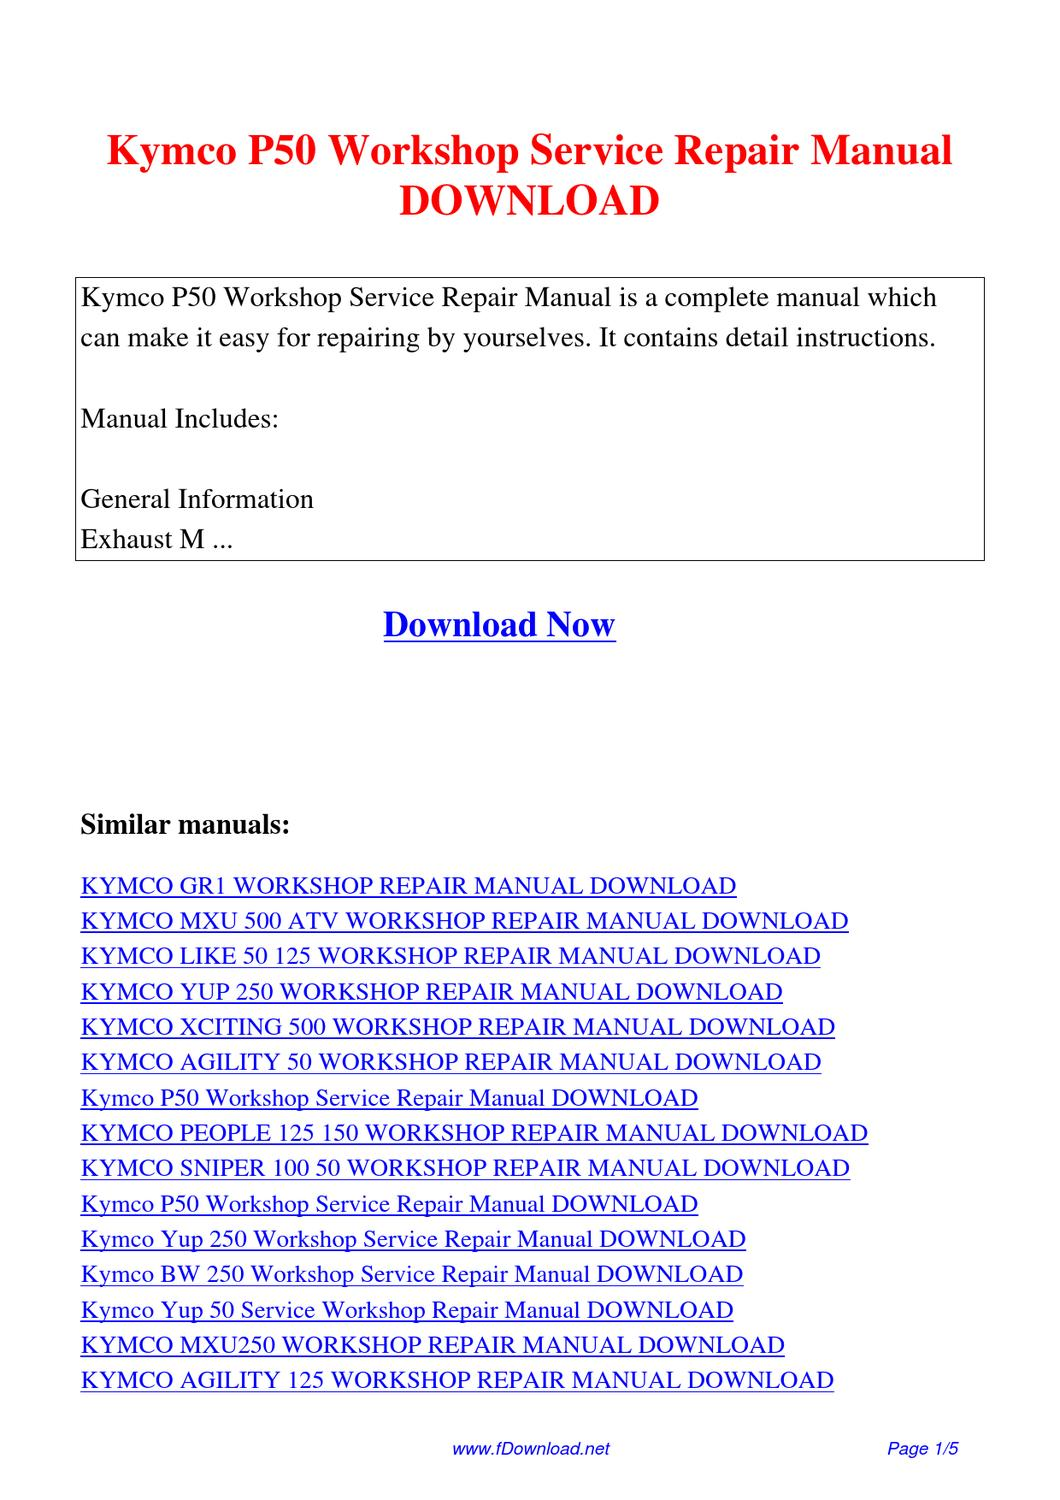 Pdf kymco agility 50 workshop service repair manual 28 pages kymco agility 50 workshop service repair manual kymco p50 workshop service repair manual by gipusi samu fandeluxe Image collections